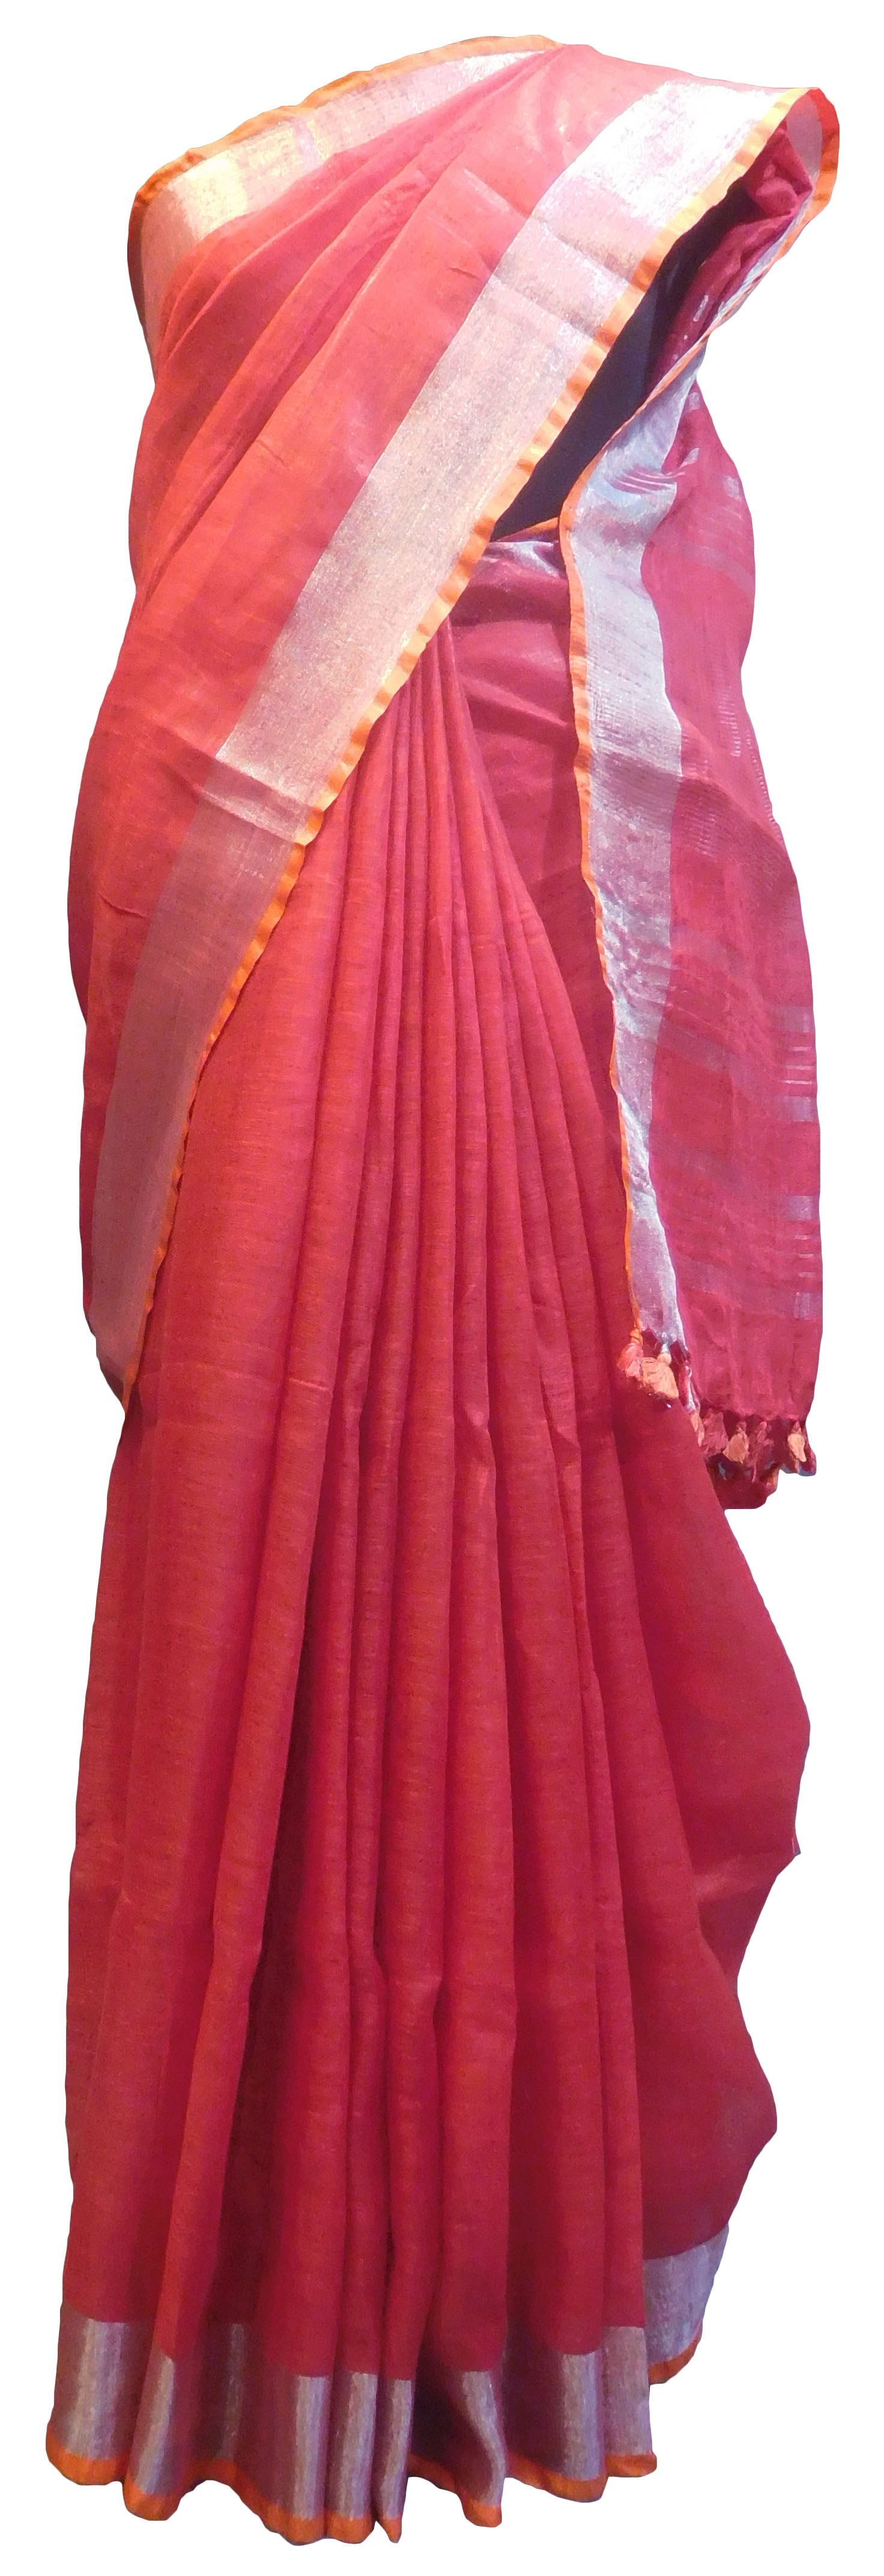 SMSAREE Red Designer Wedding Partywear Handloom Linen Thread & Zari Hand Embroidery Work Bridal Saree Sari With Blouse Piece E855